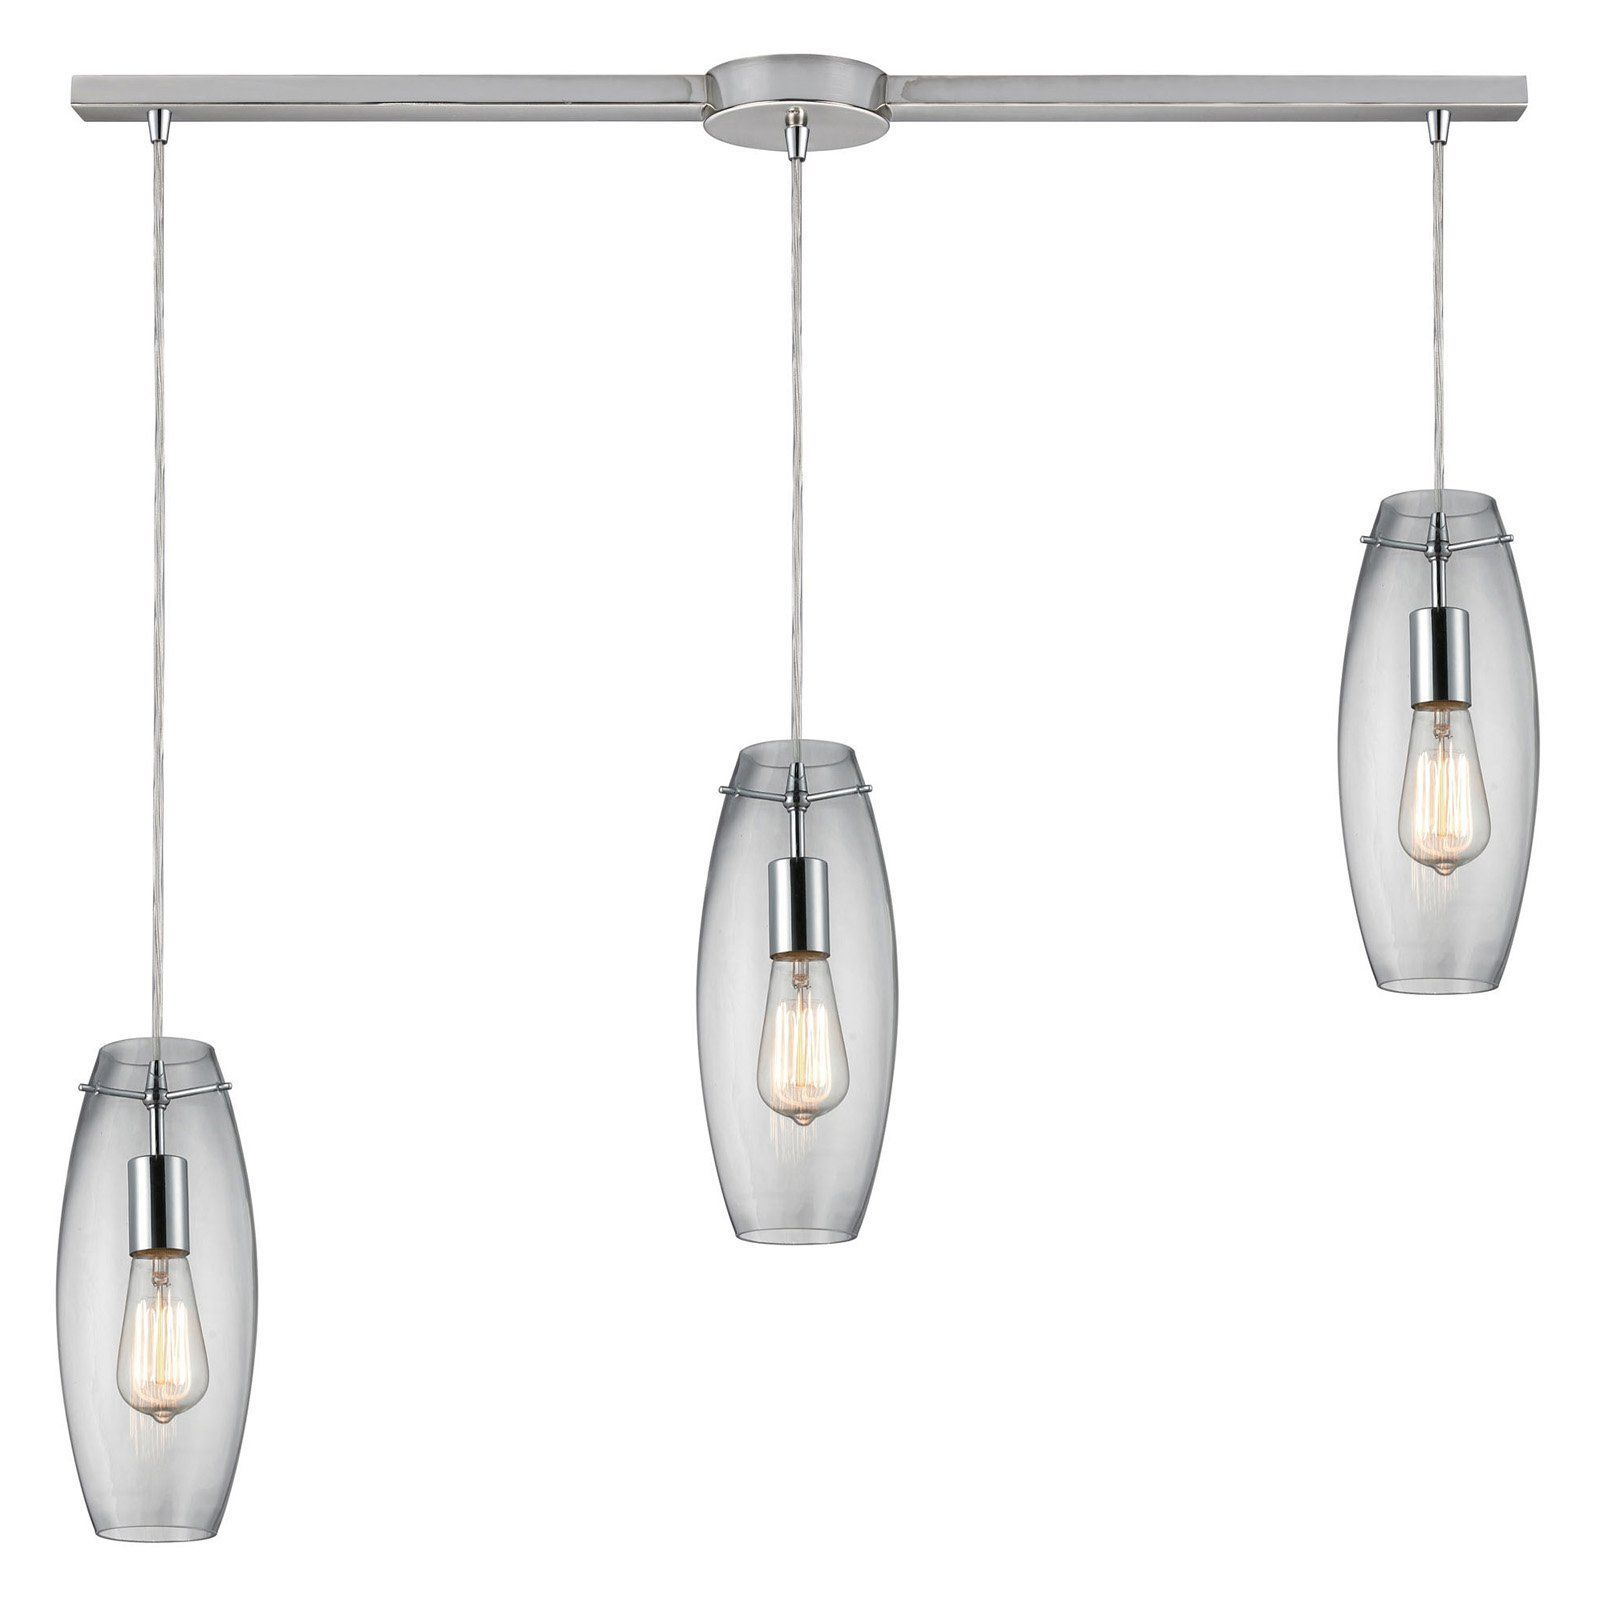 Elk lighting menlow park 600 linear pendant light 60054 3l elk lighting menlow park 600 linear pendant light the contemporary elk lighting menlow park 600 linear pendant light features a bar fixture in polished arubaitofo Image collections